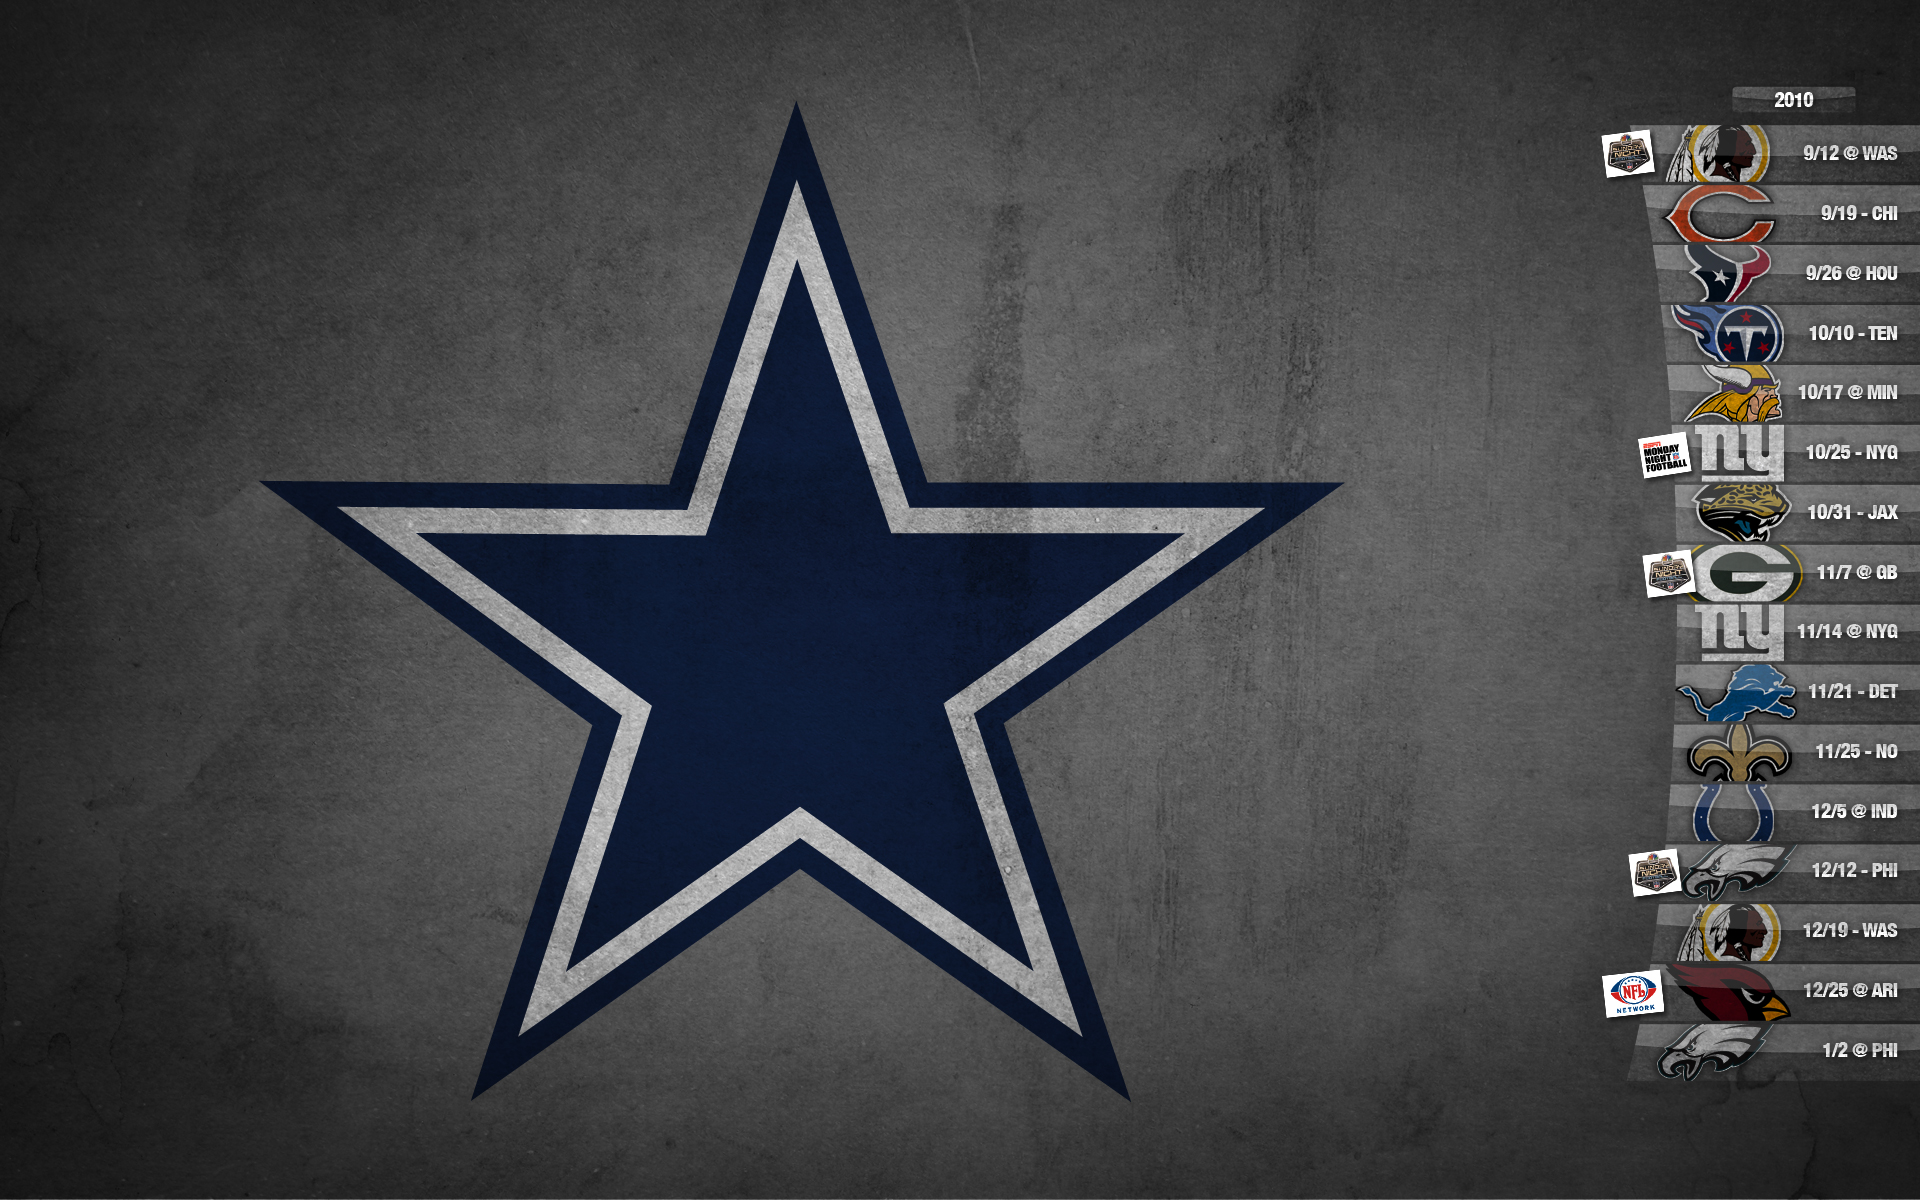 Dallas Cowboys Schedule Desktop Wallpaper Wallpaper 1920x1200